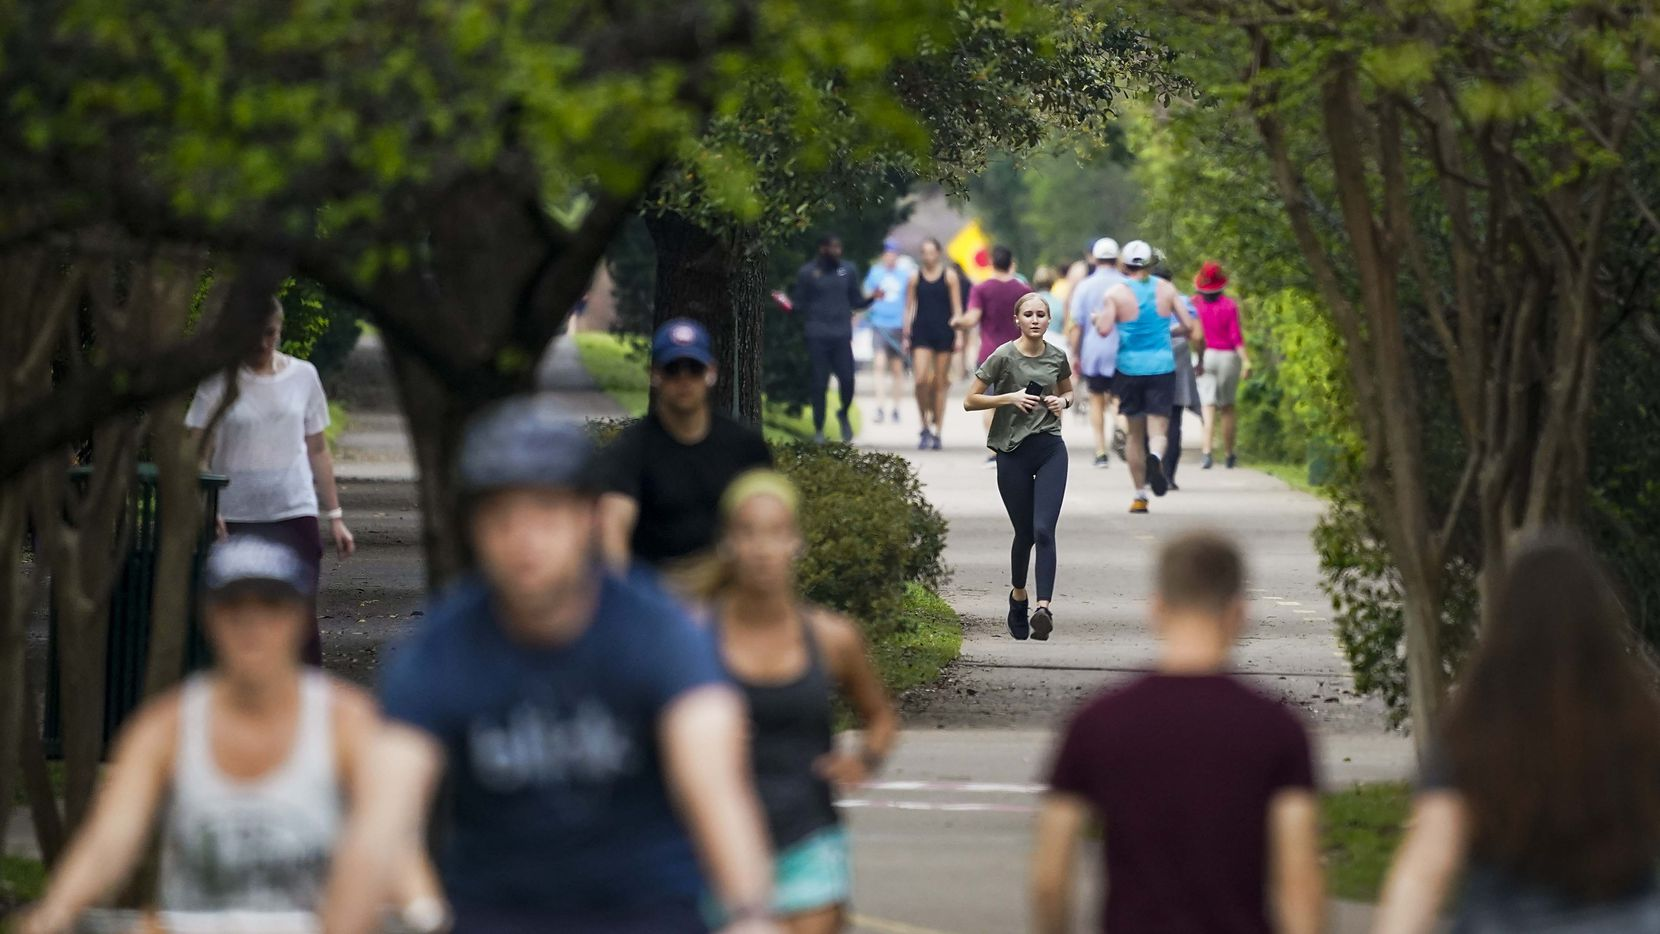 Runners, walkers and cyclists take to the Katy Trail near Knox Street on Thursday, March 19, 2020, in Dallas.  To encourage social distancing, the Katy Trail is urging people to consider alternative areas for walks and runs.